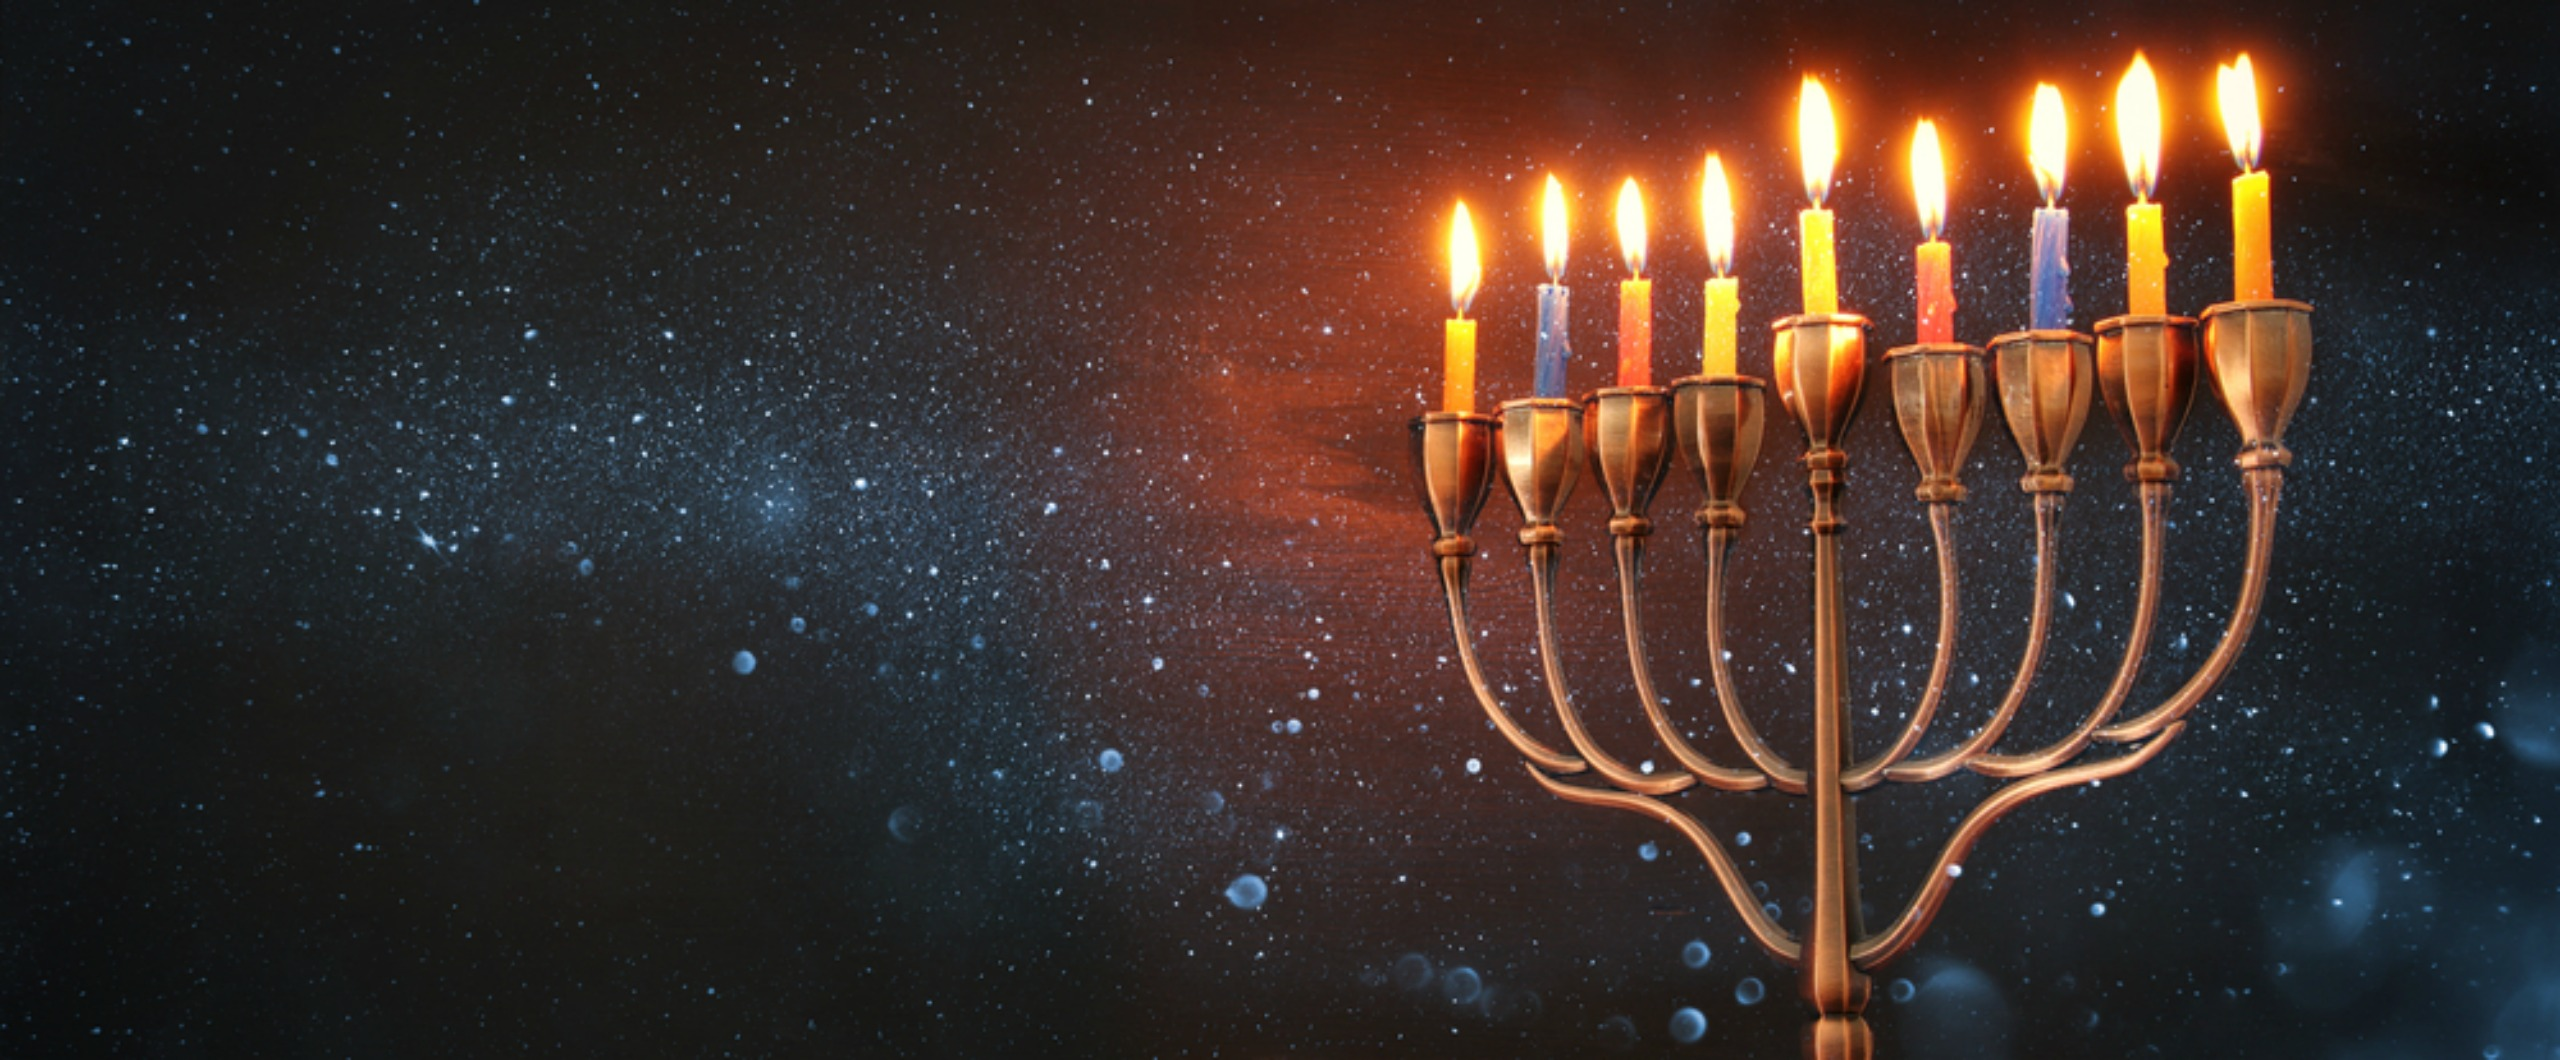 Happy Hanukkah Candle Lights 2019 – Free Hanukkah Candle Lights | Chanukah Candle Lights Images